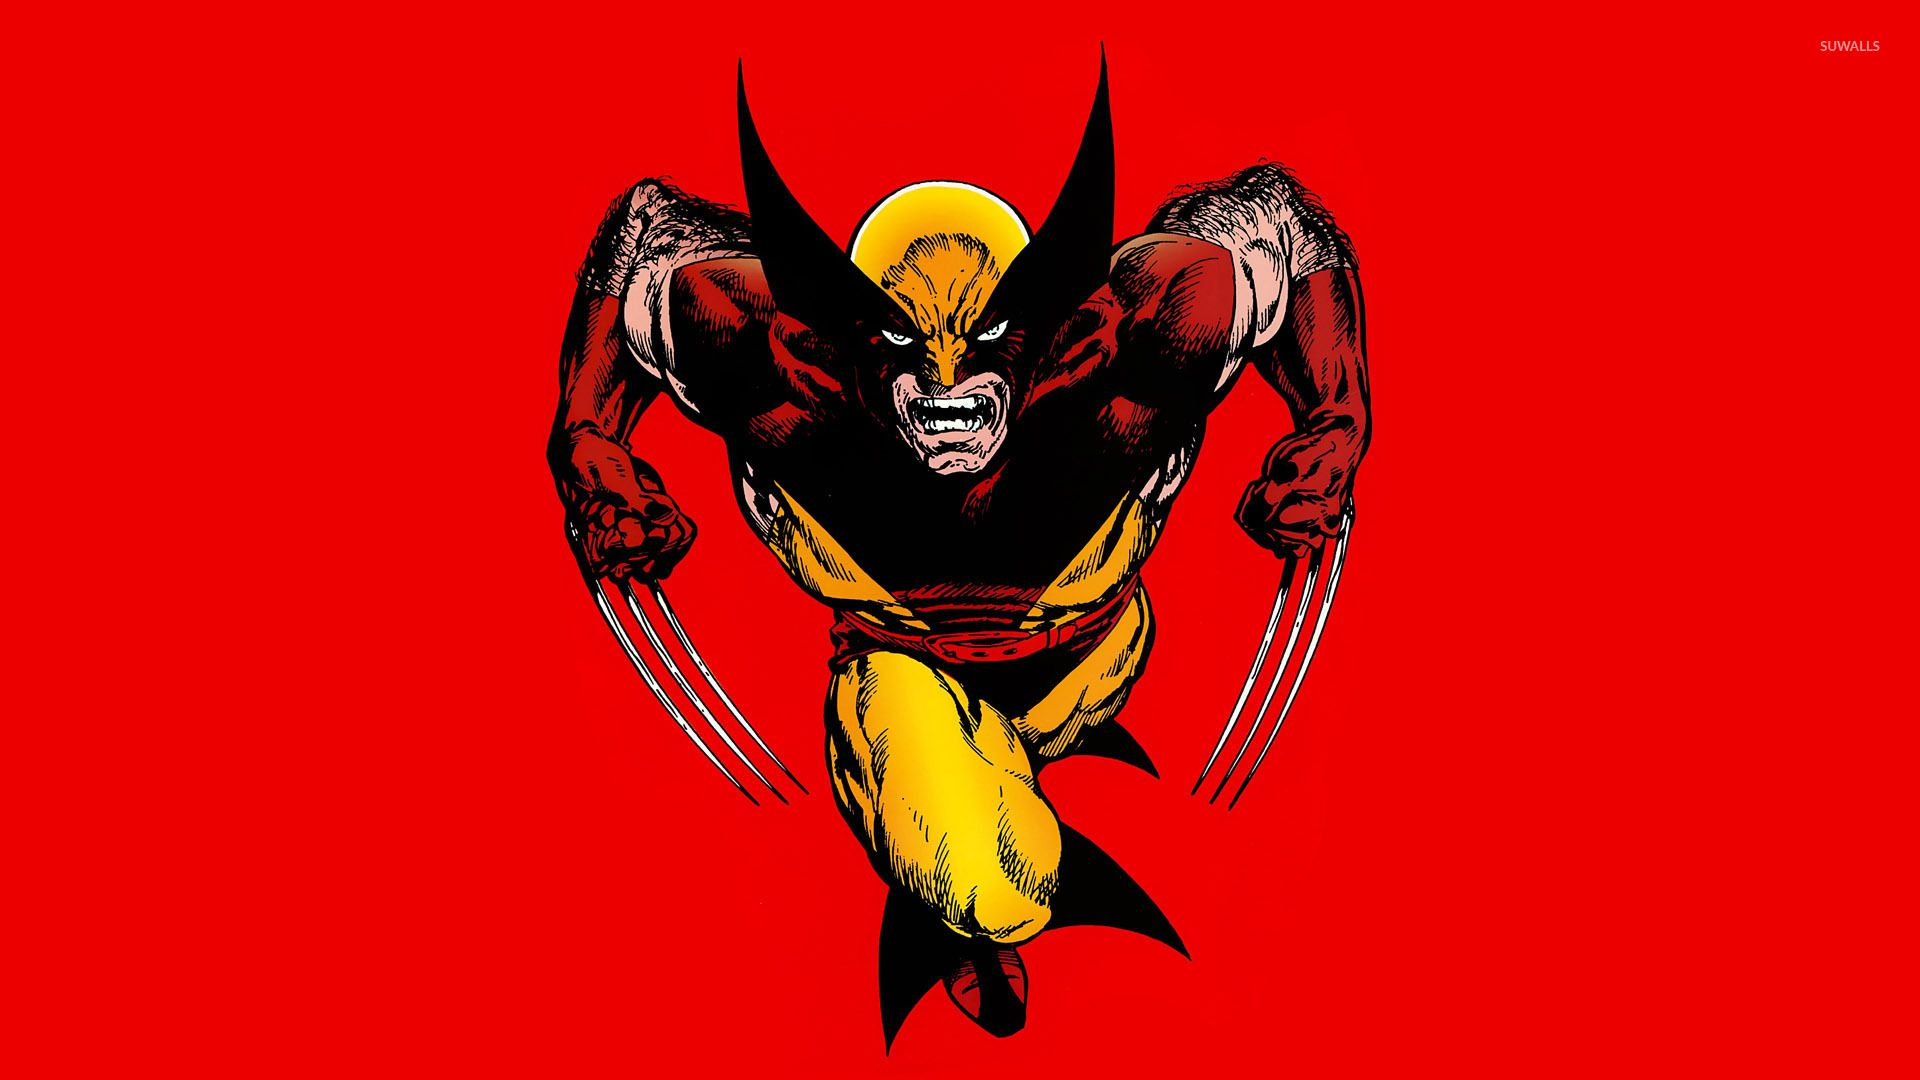 Wolverine Cartoon Wallpapers Top Free Wolverine Cartoon